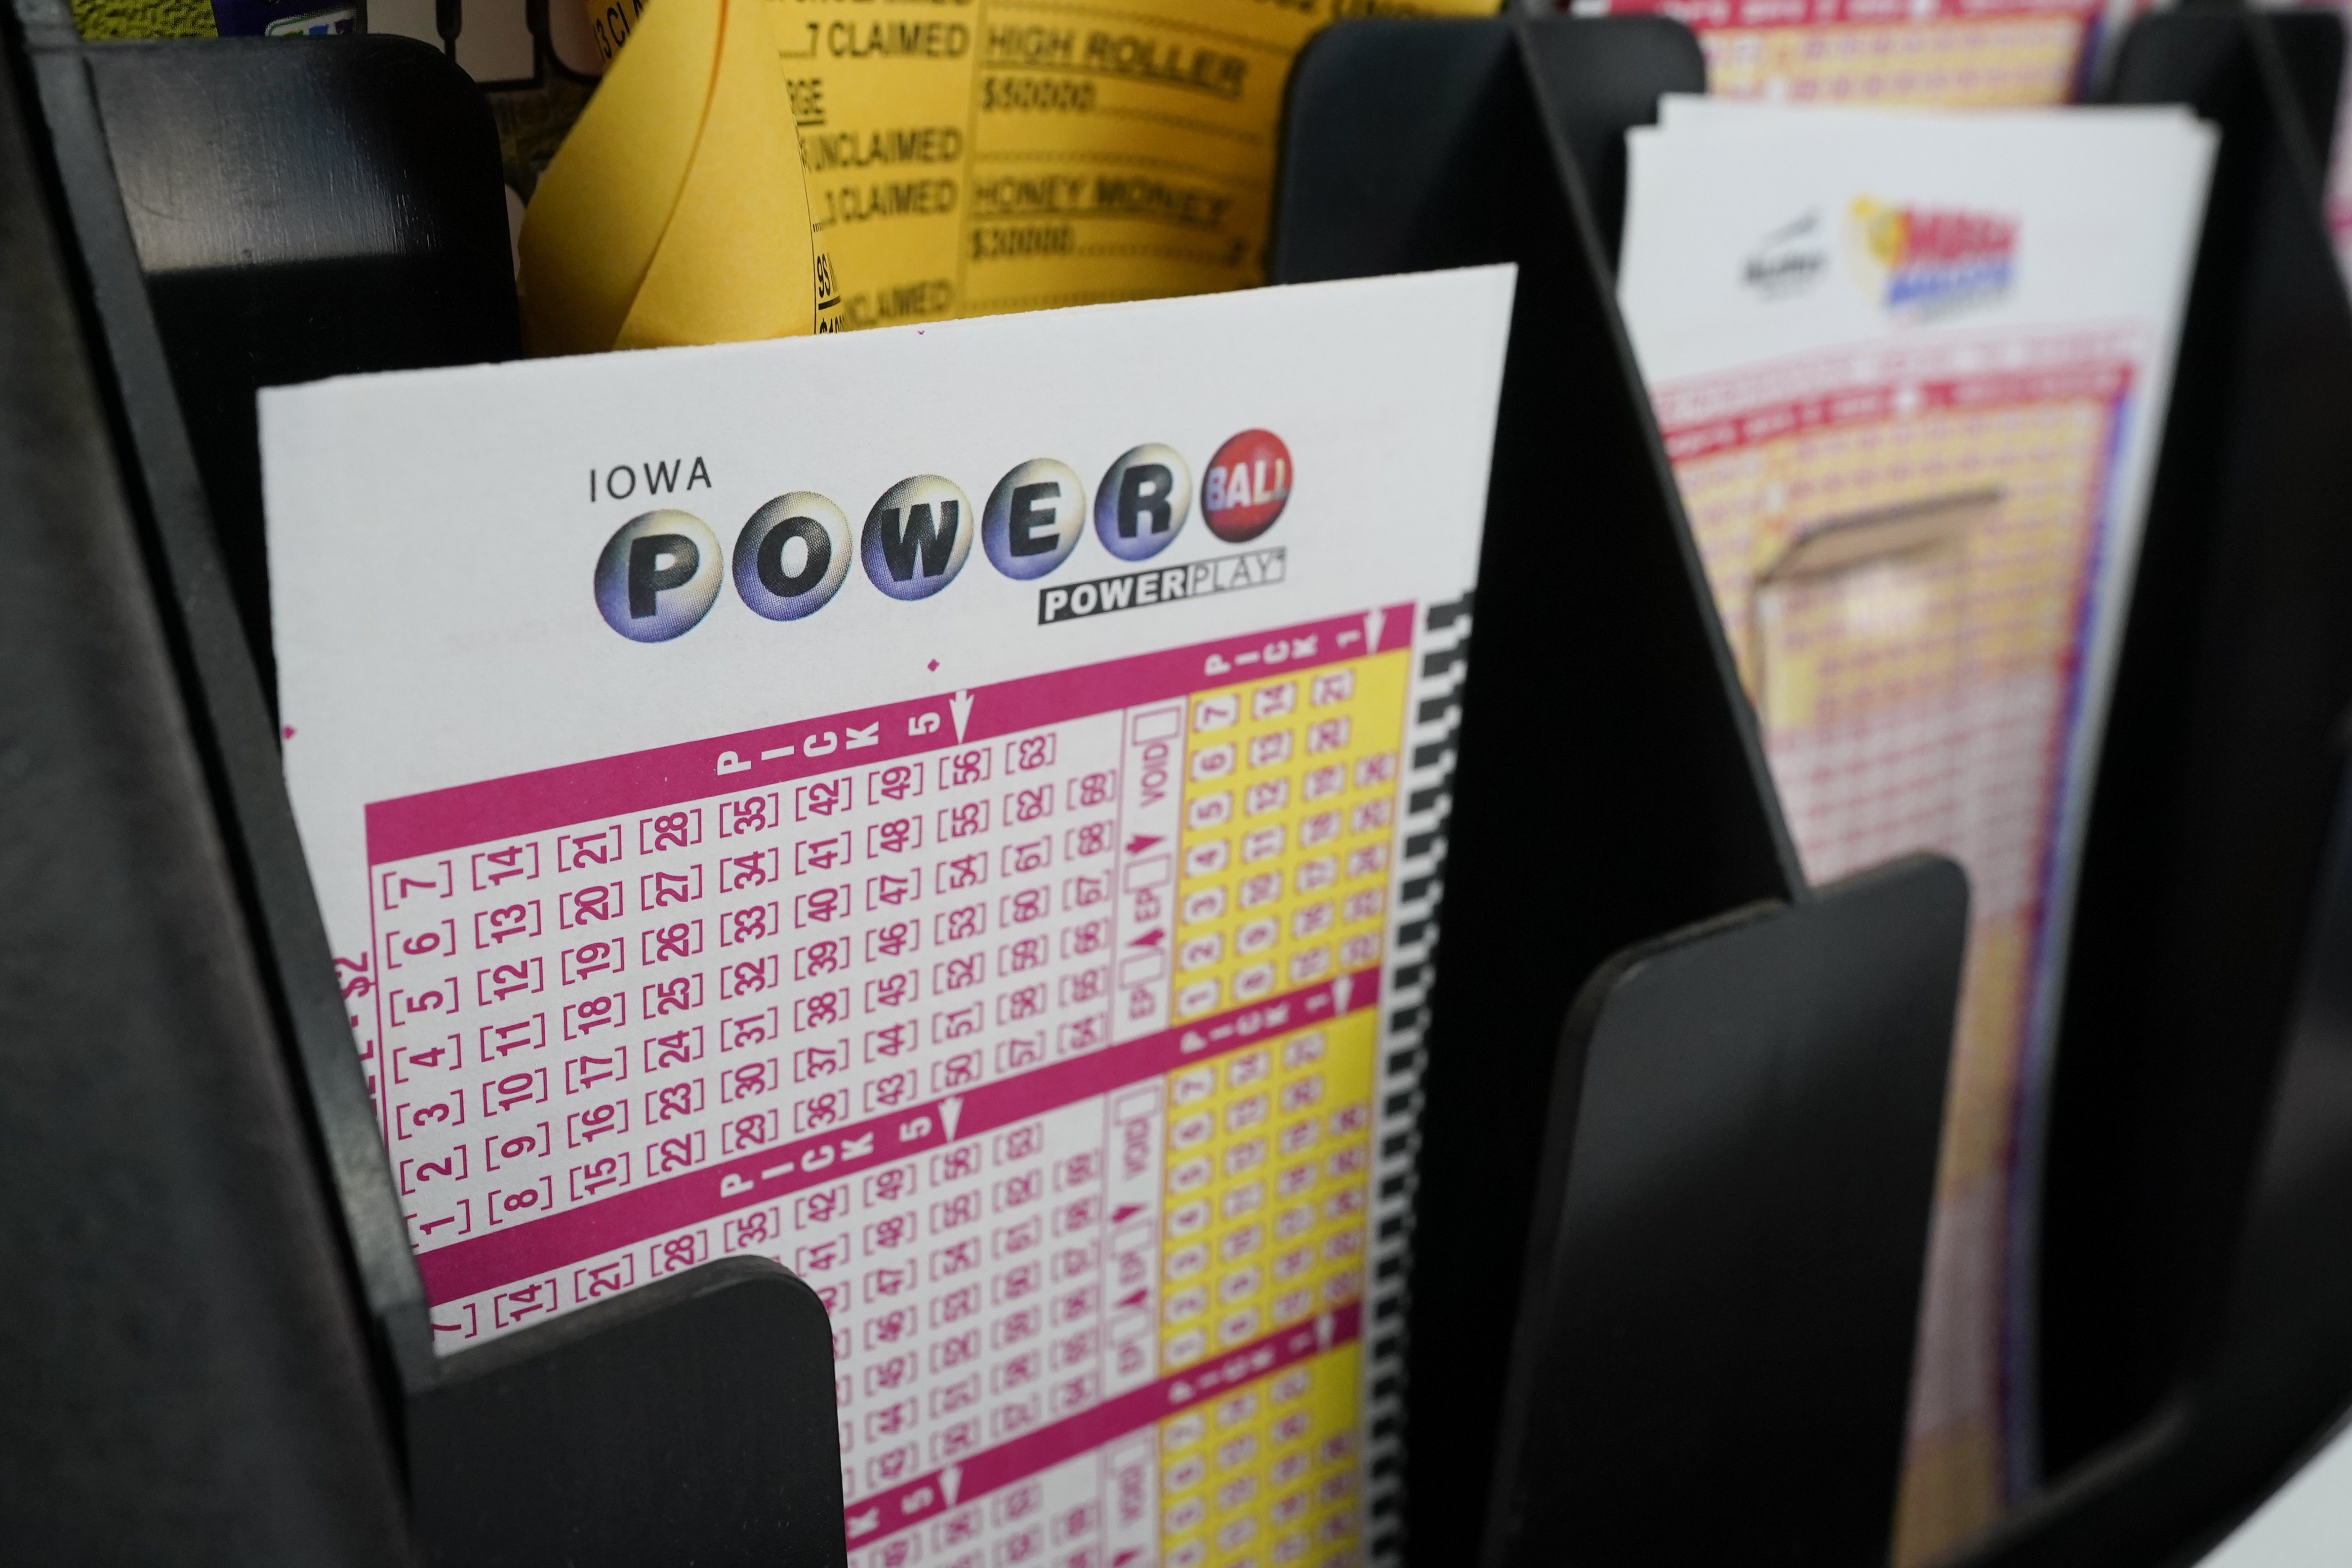 Powerball jackpot rises to $620 million, 10th largest in U.S. history